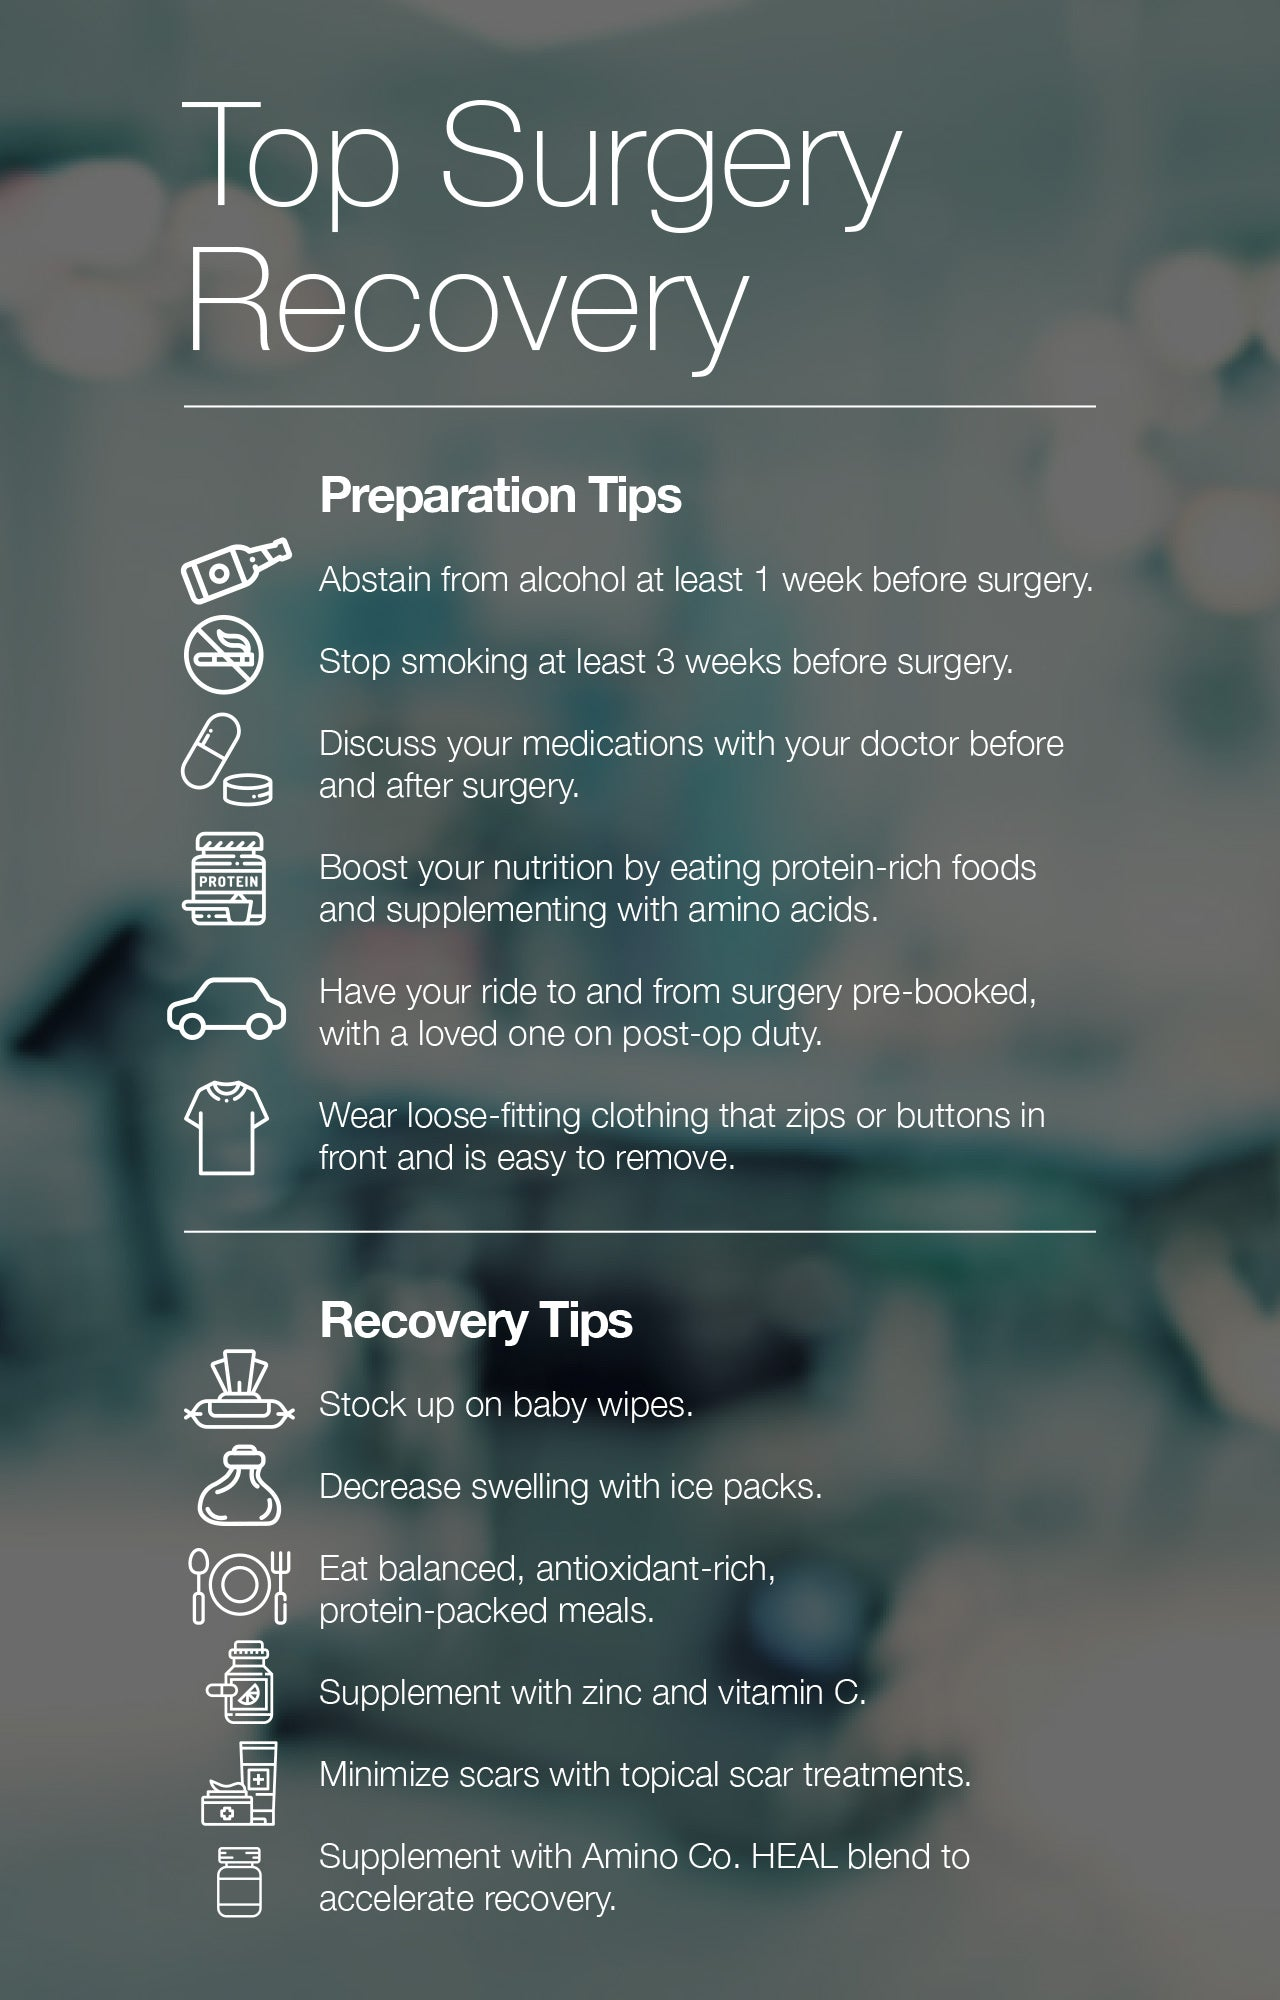 Top surgery recovery and preparation